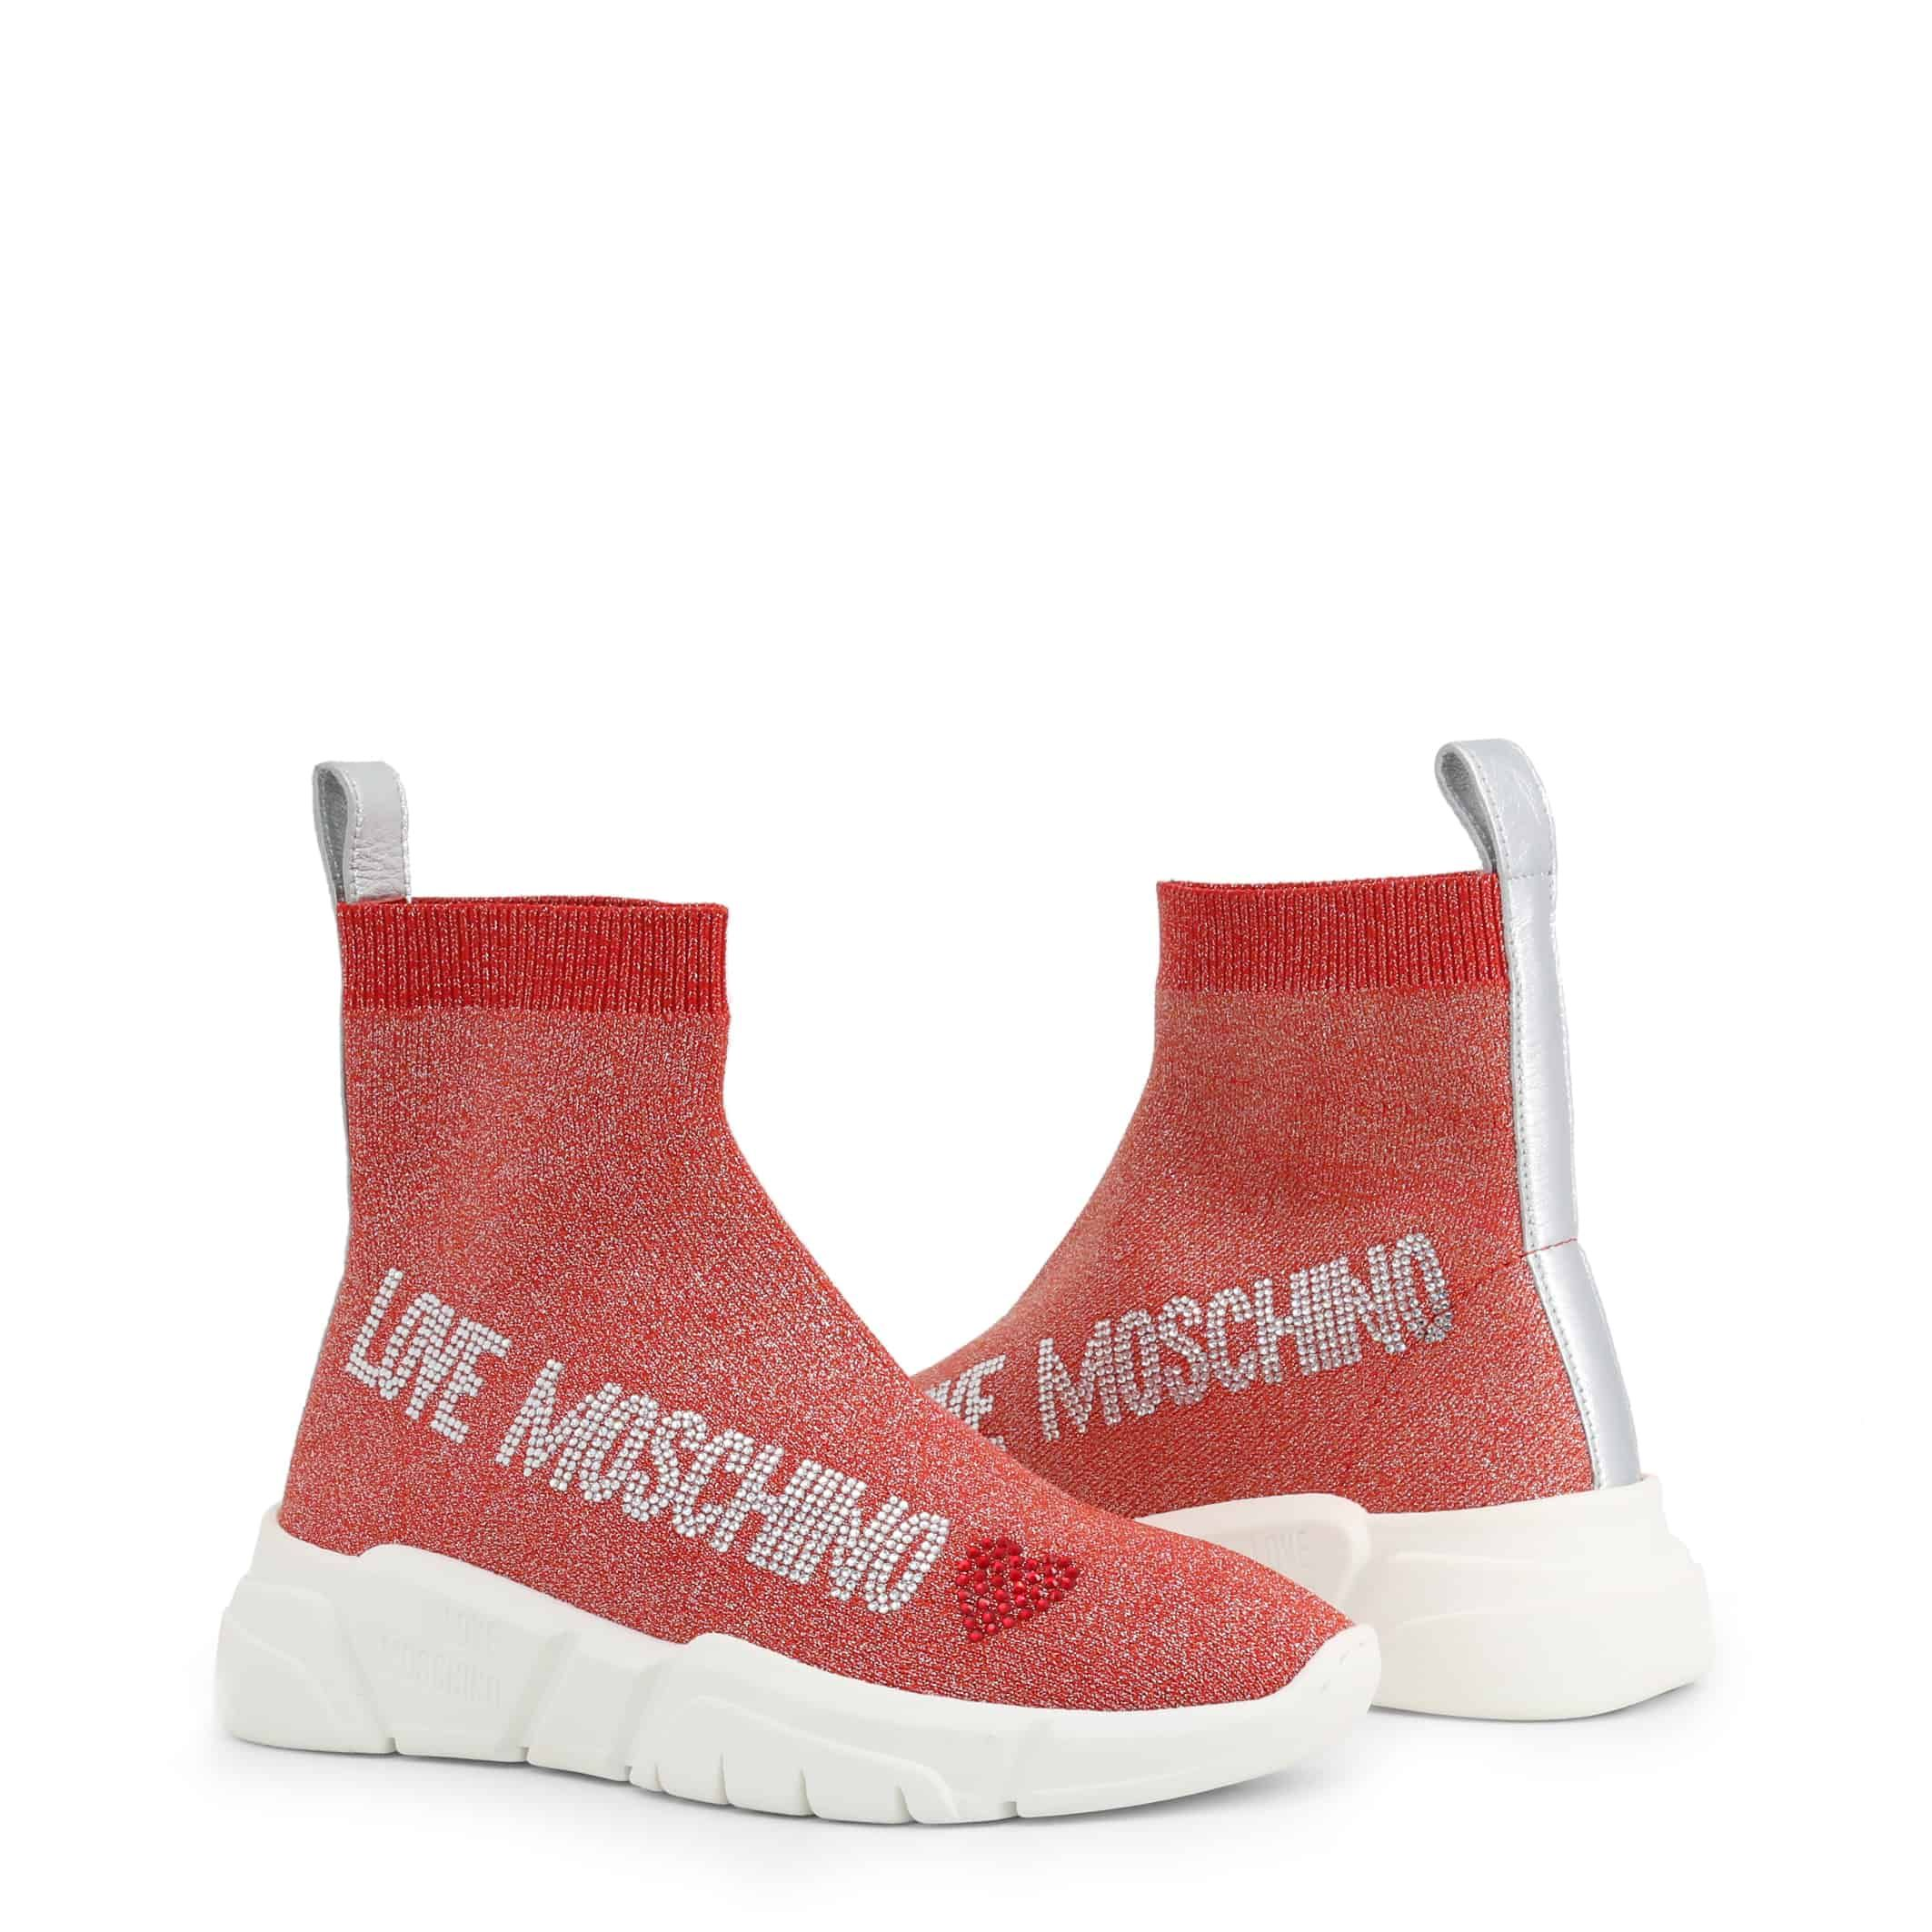 Love Moschino – JA15103G1AIR Sneakers Dam